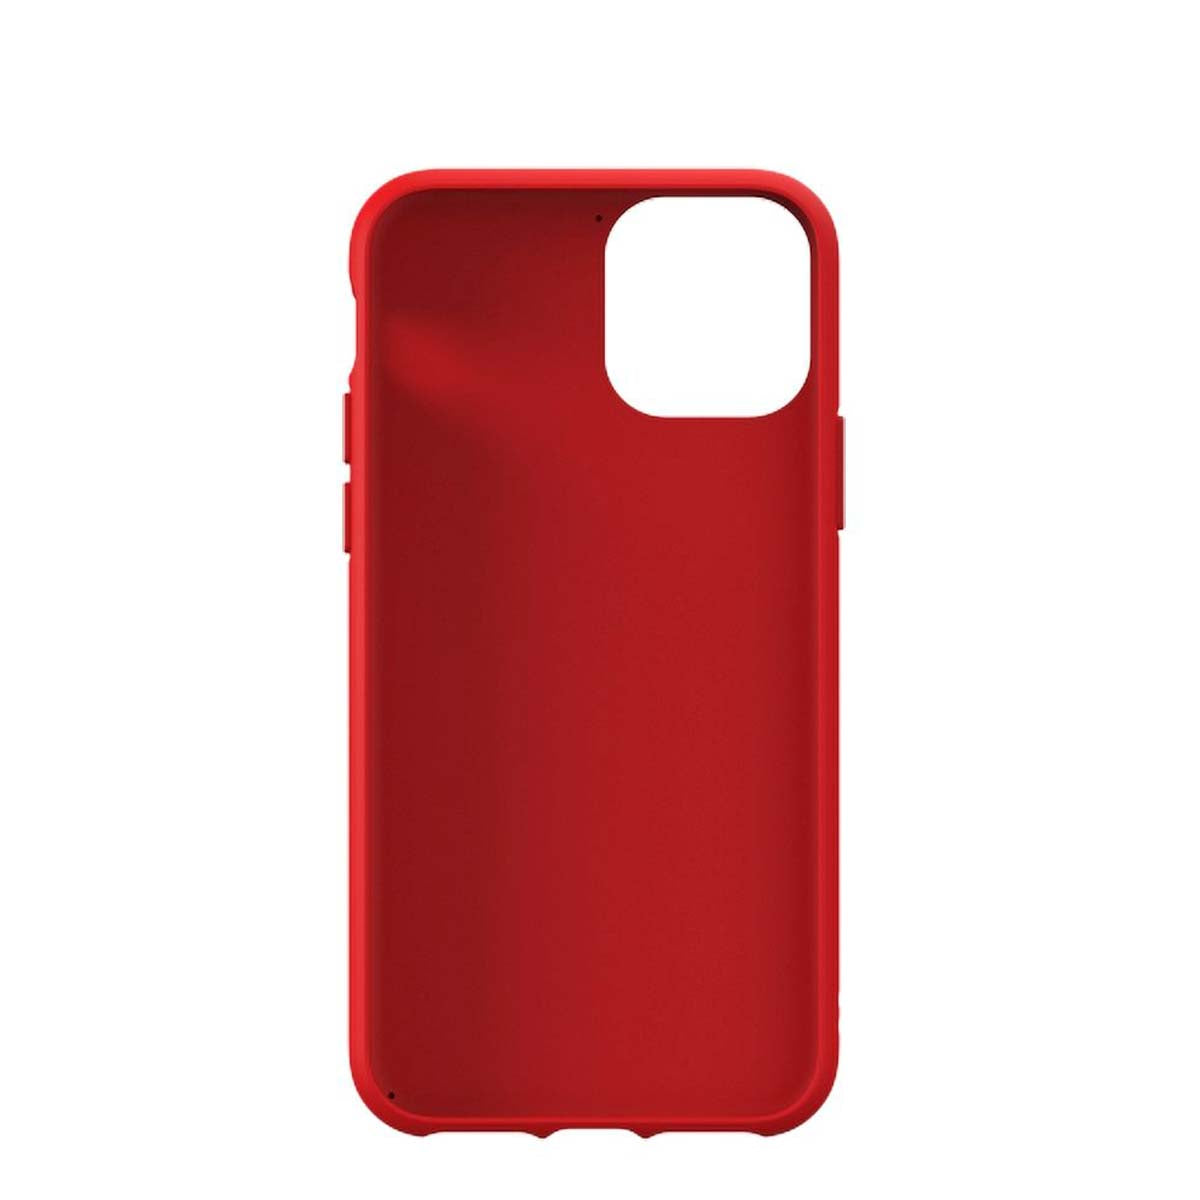 Capa de Smartphone Adidas Originals Moulded Canvas Apple iPhone 11 Pro Vermelha